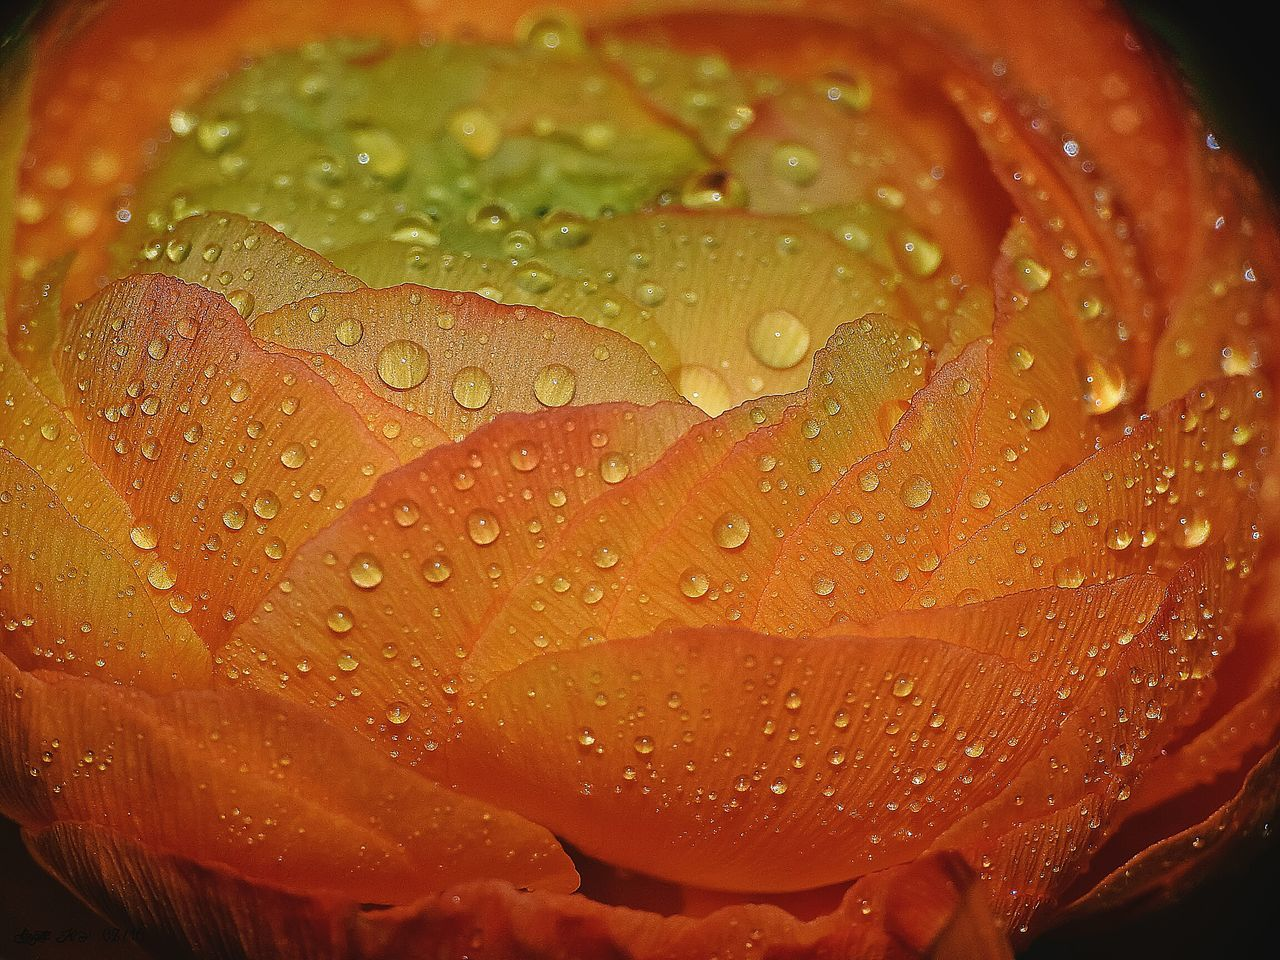 drop, water, wet, nature, freshness, growth, fragility, close-up, raindrop, petal, no people, beauty in nature, leaf, flower, day, flower head, outdoors